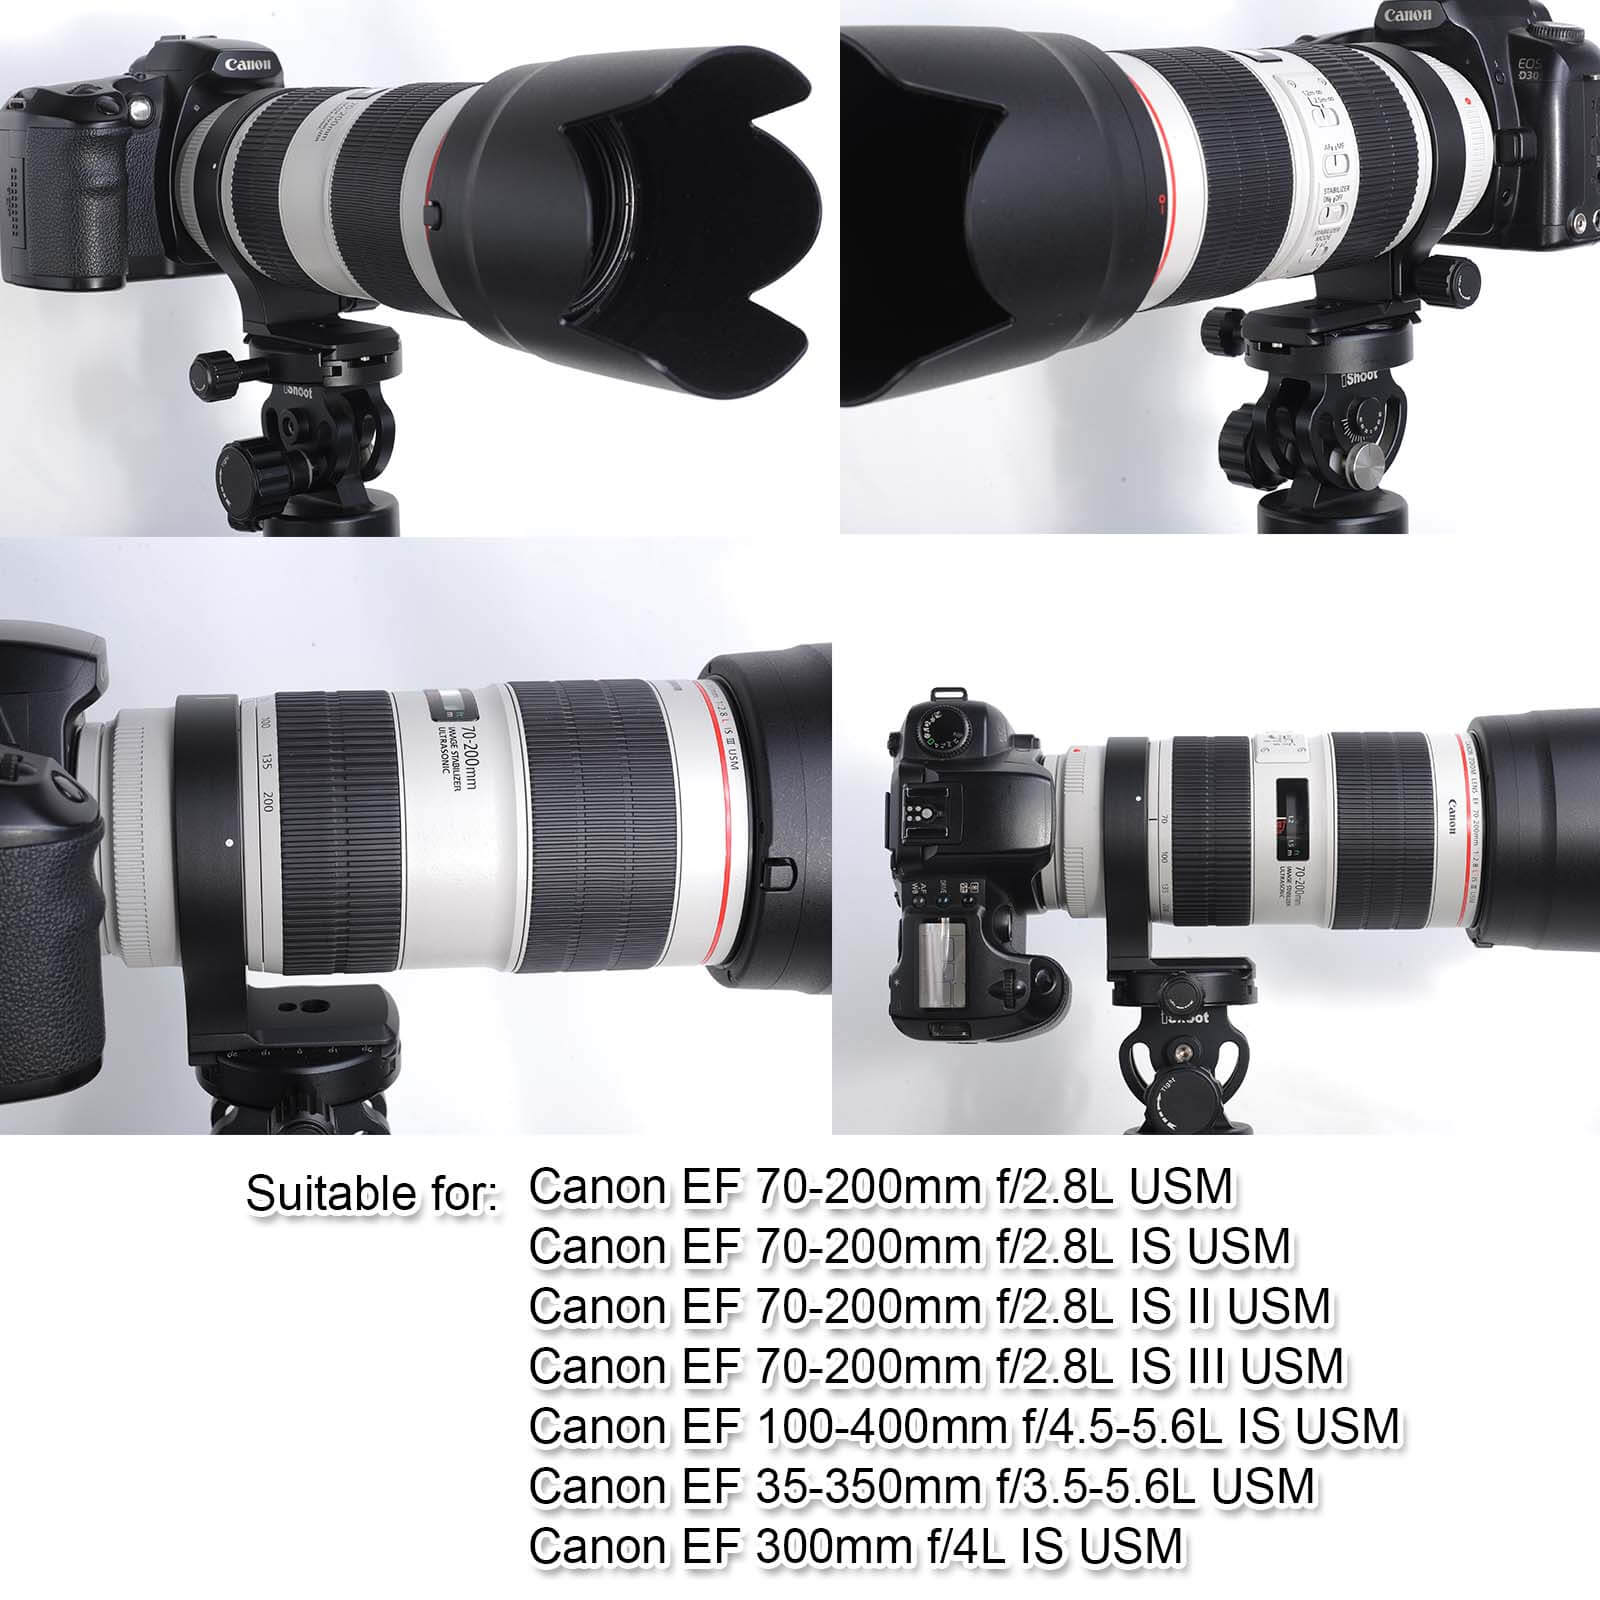 Tripod Mount Ring iShoot 78mm Lens Collar Support for Canon EF 70-200mm f//2.8L is//II//III USM Built-in Arca-Swiss Type Quick Release Plate 100-400mm f//4.5-5.6L is USM and 300mm f//4L is USM Lens